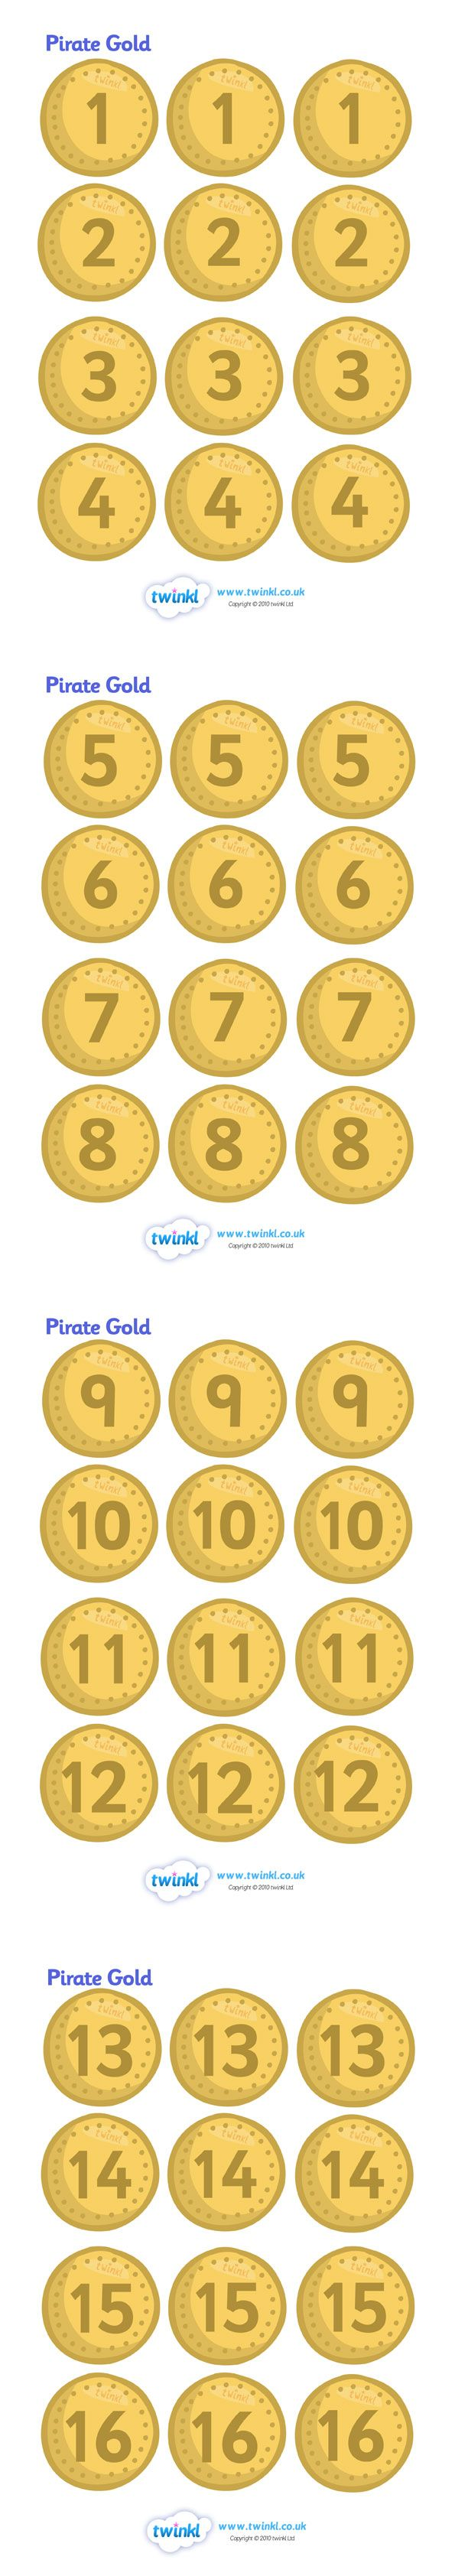 twinkl resources pirate coins thousands of printable primary teaching resources for eyfs. Black Bedroom Furniture Sets. Home Design Ideas